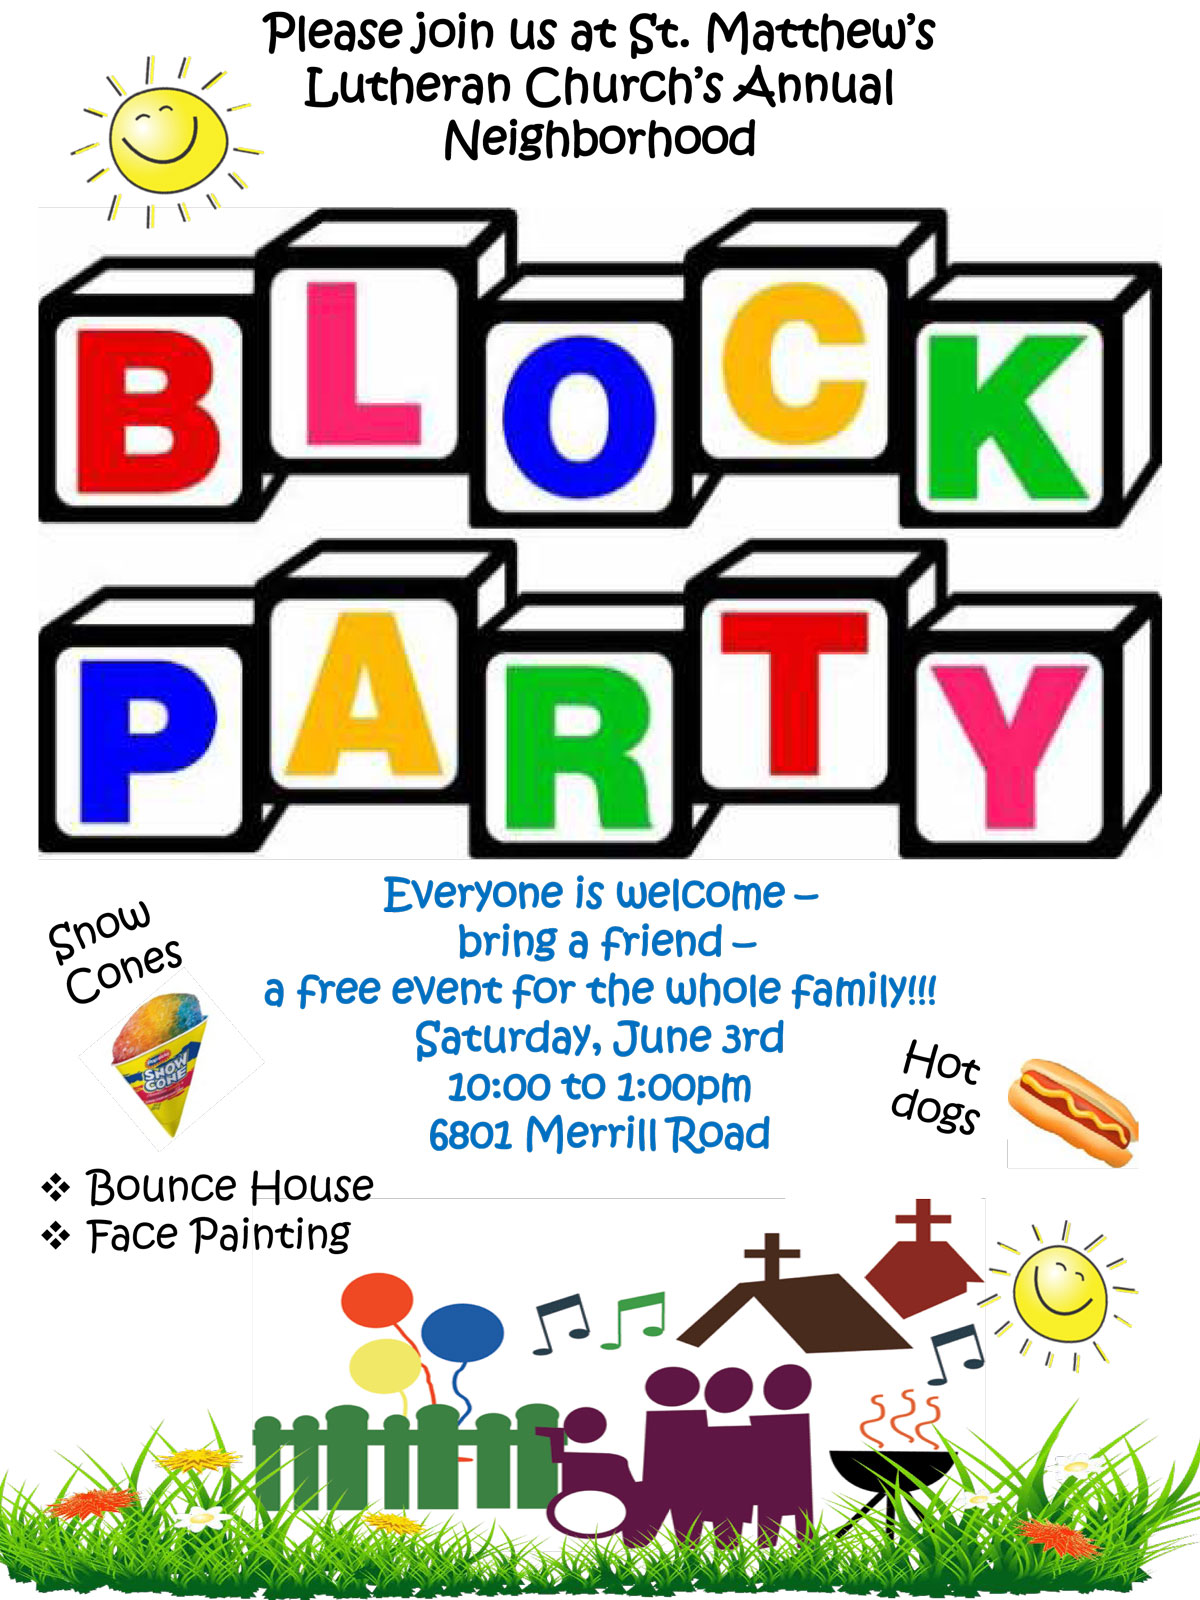 New Block Party 2017 187 St Matthew S Lutheran Church